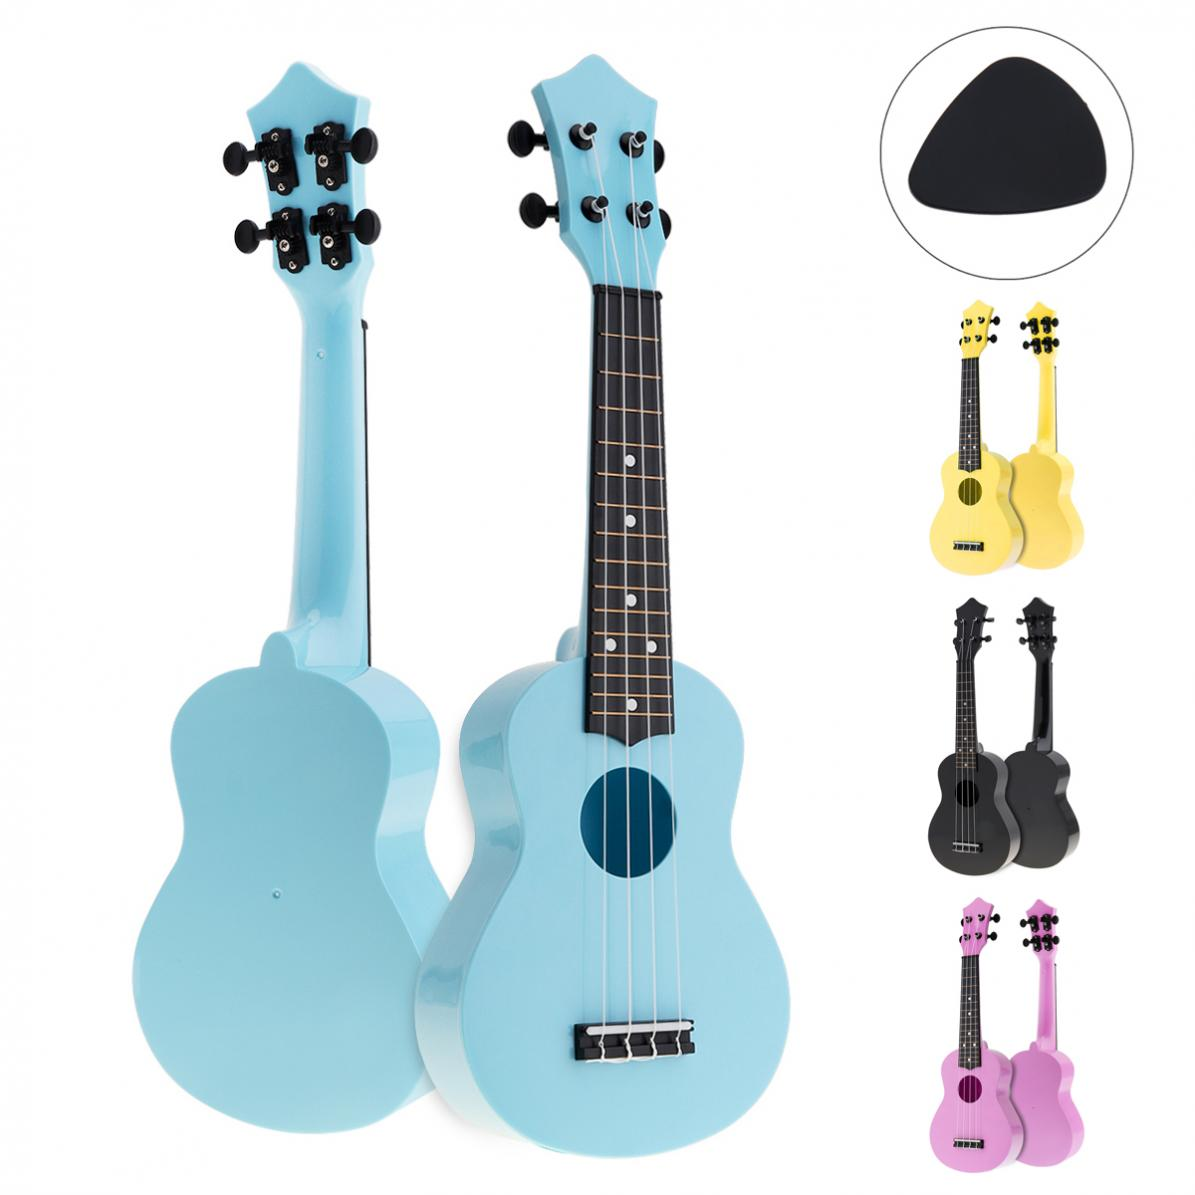 21-inch-colorful-acoustic-ukulele-uke-4-strings-hawaii-guitar-guitarra-musica-instrument-for-kids-and-music-beginner